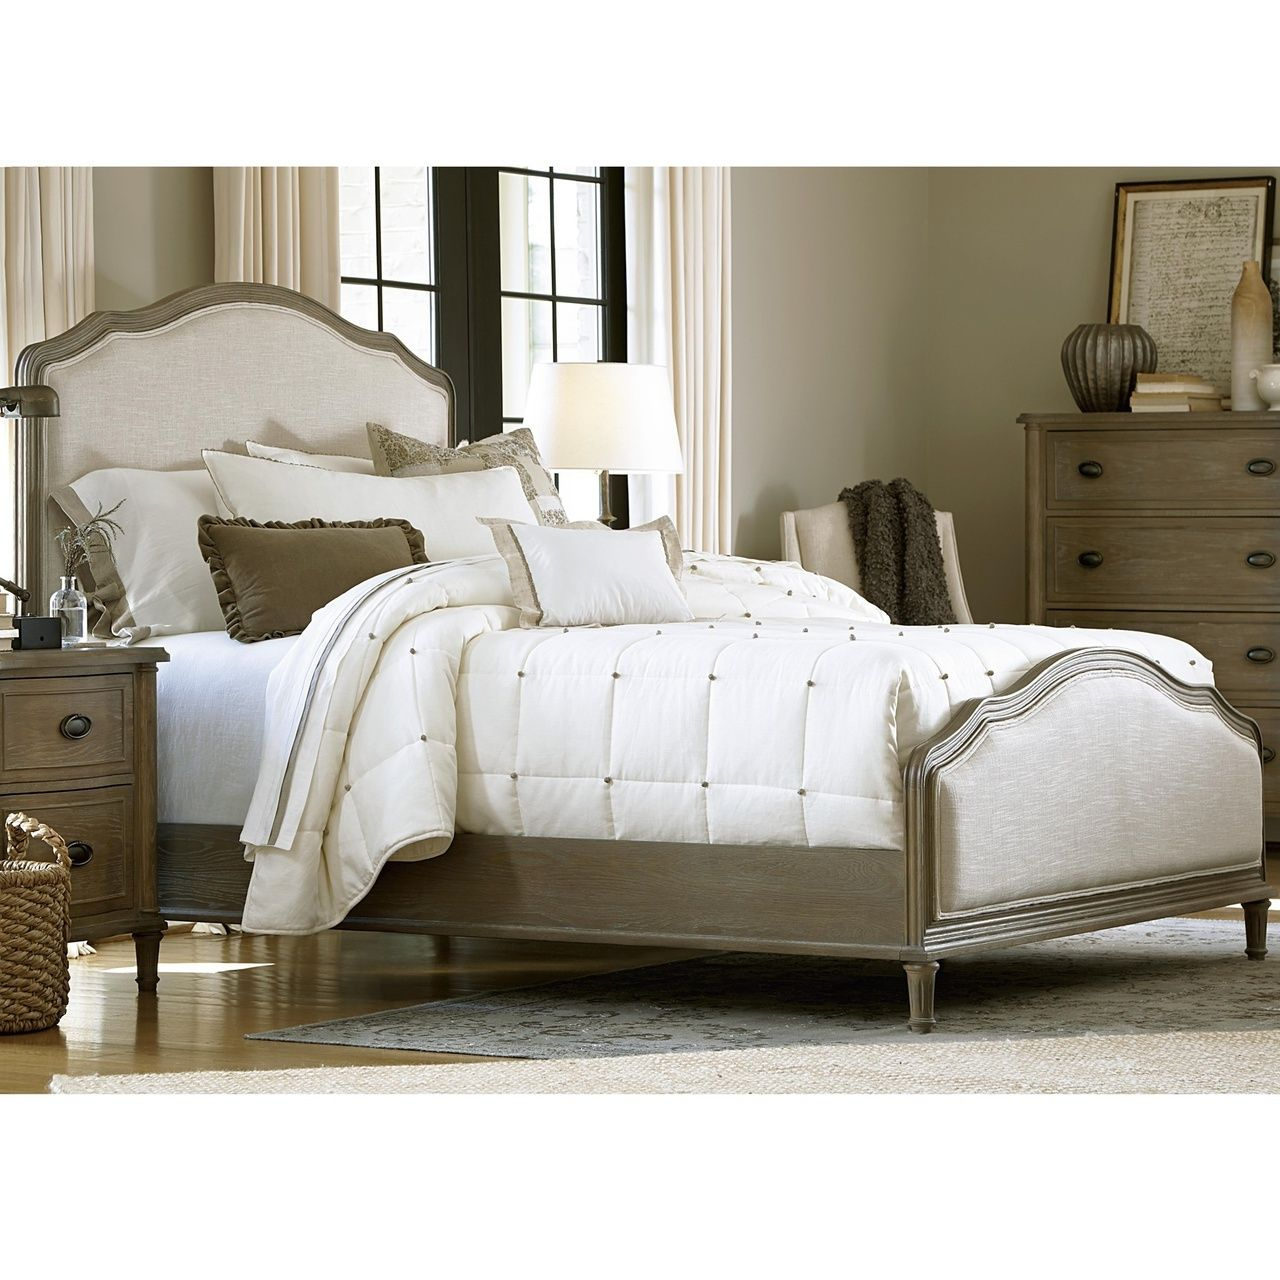 French Country Oak 6 Piece Queen Bedroom Set Panel Bed Frames